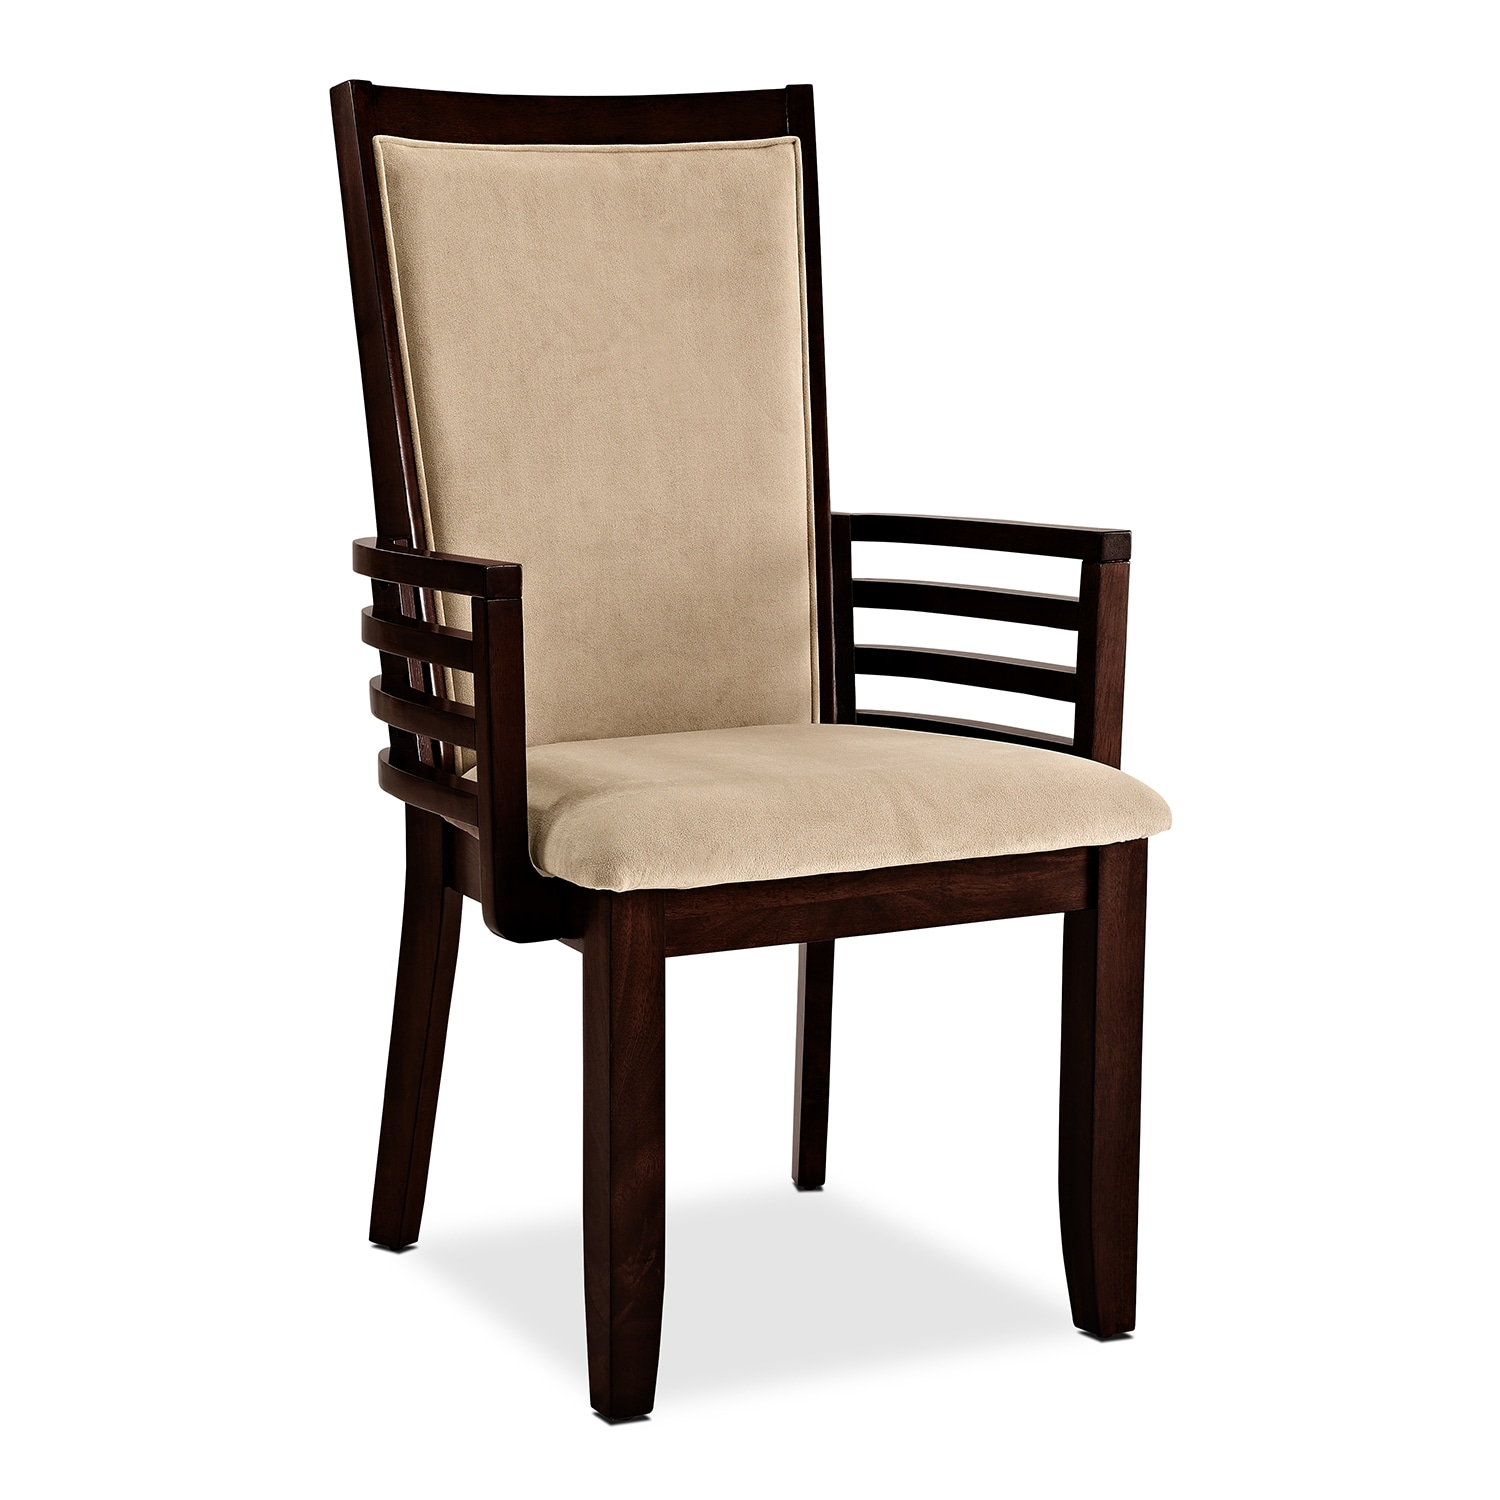 Furnishings for every room online and store furniture for Dining room chairs with arms